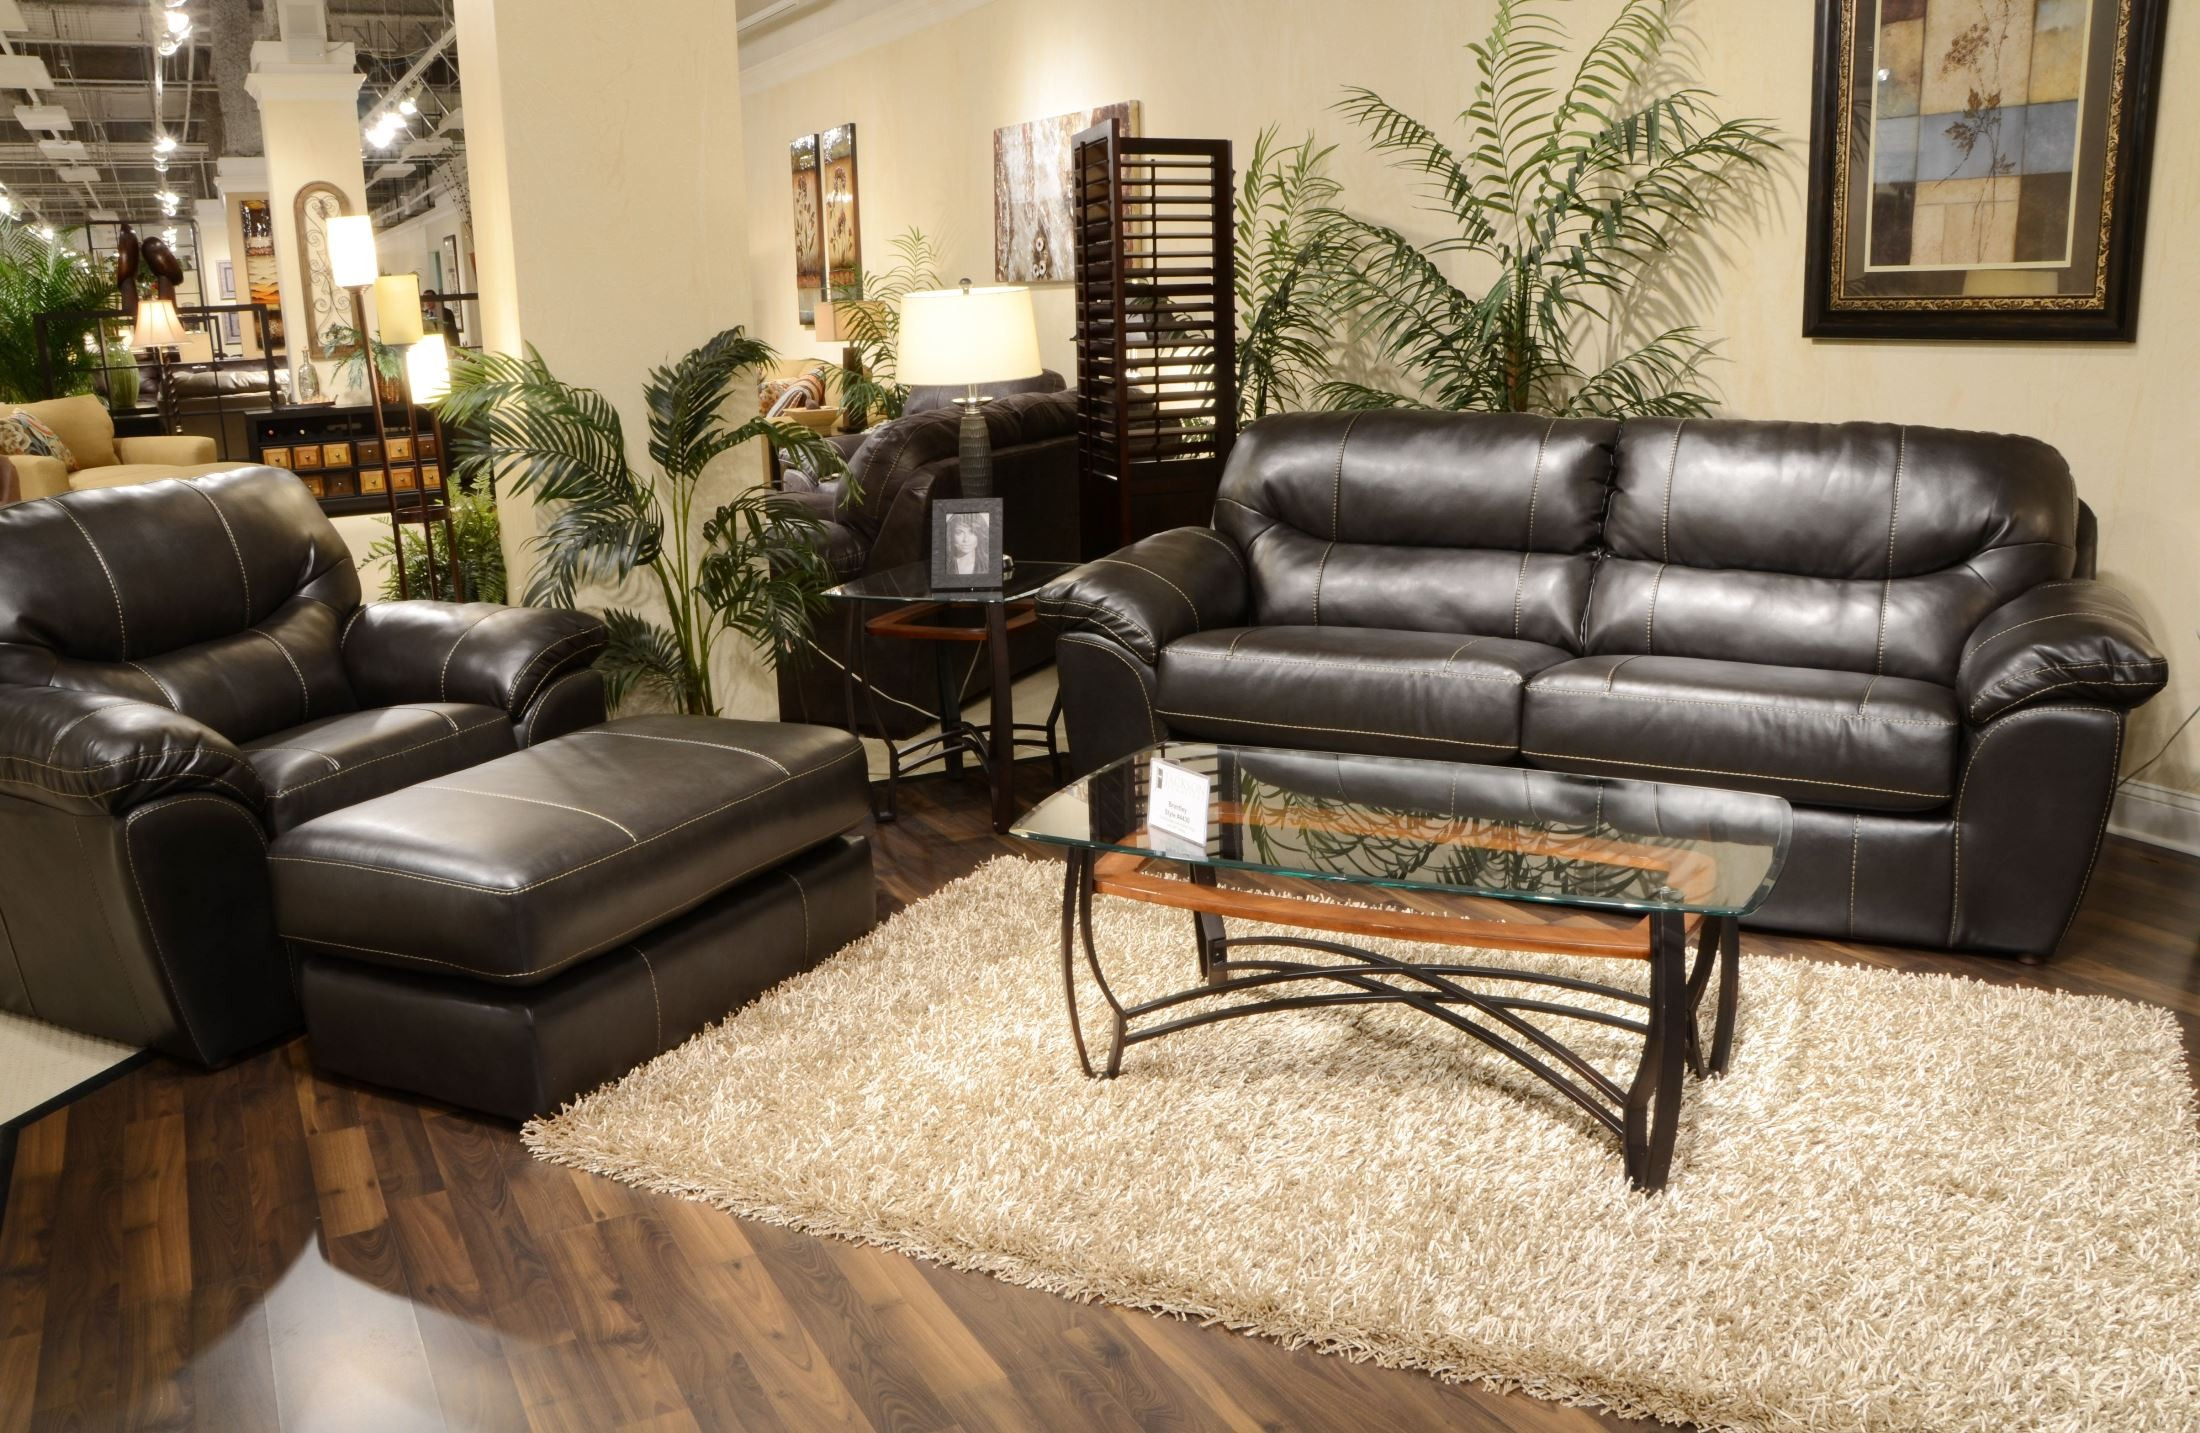 Brantley steel living room set from jackson 443003000000000000 coleman furniture Metal living room furniture